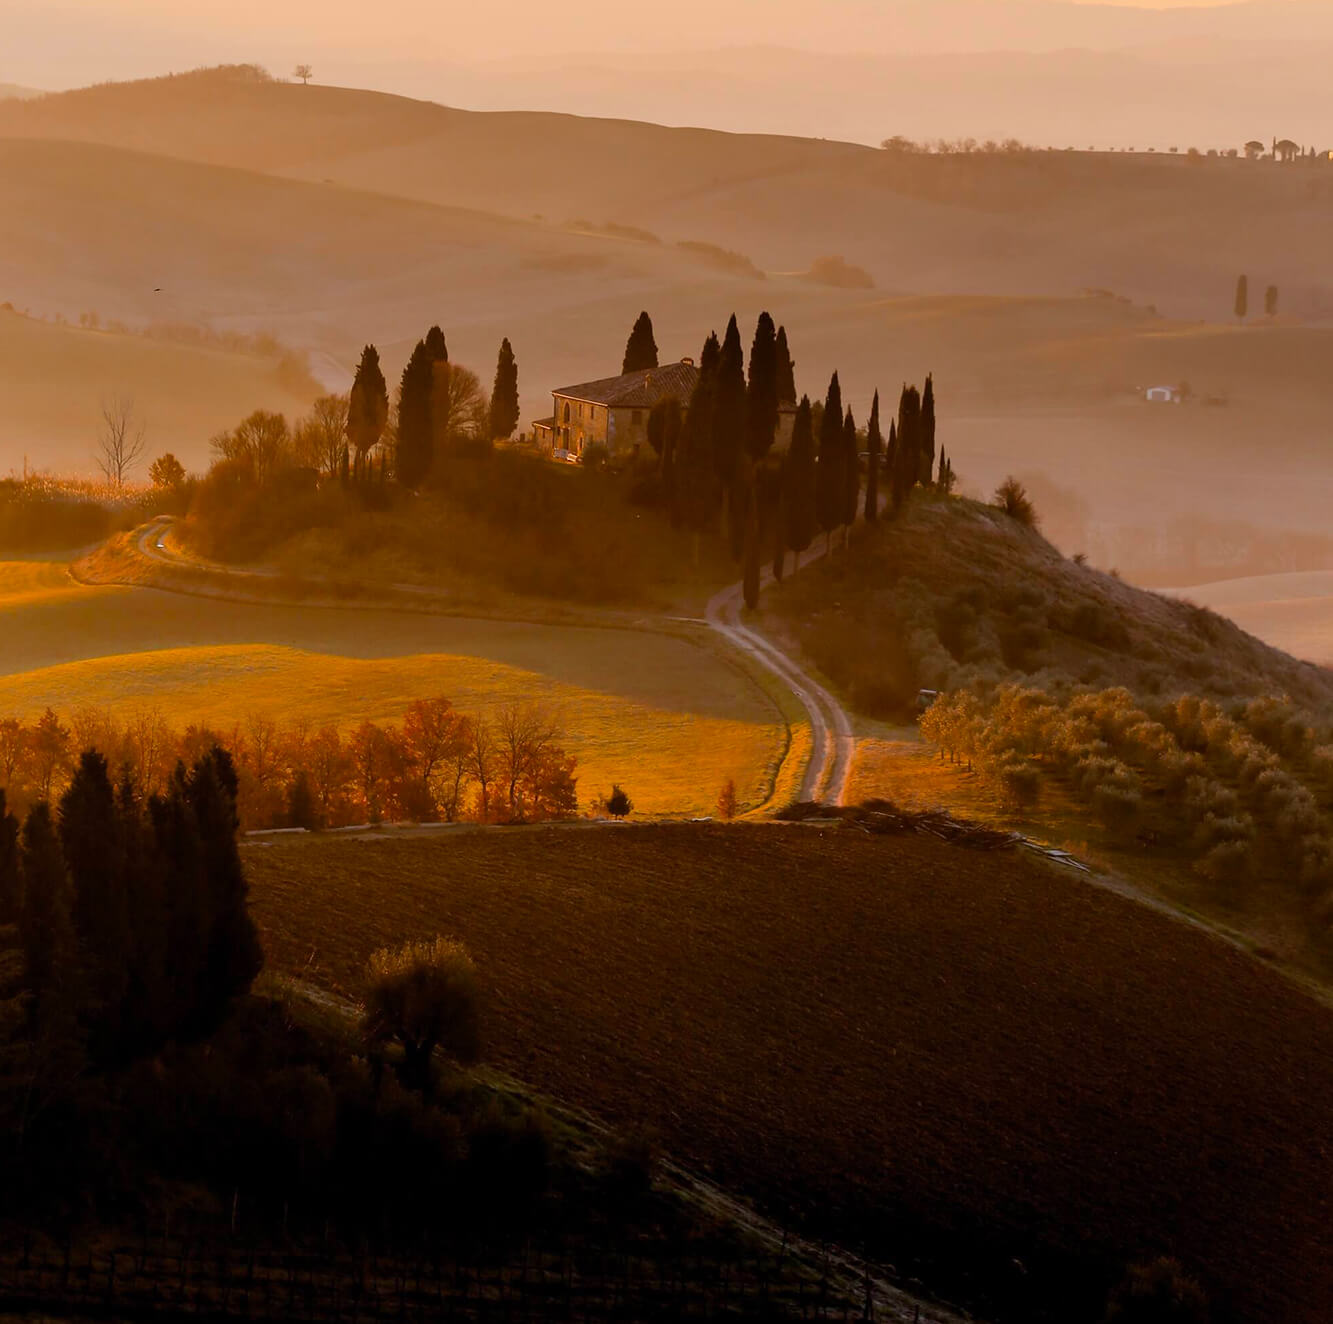 Charming castles and luxury villas for your wedding in Val d'Orcia, Florenze, Siena, Tuscany. Giulia Alessandri Wedding Planner, Wedding Design & Wedding Coordination in Tuscany.